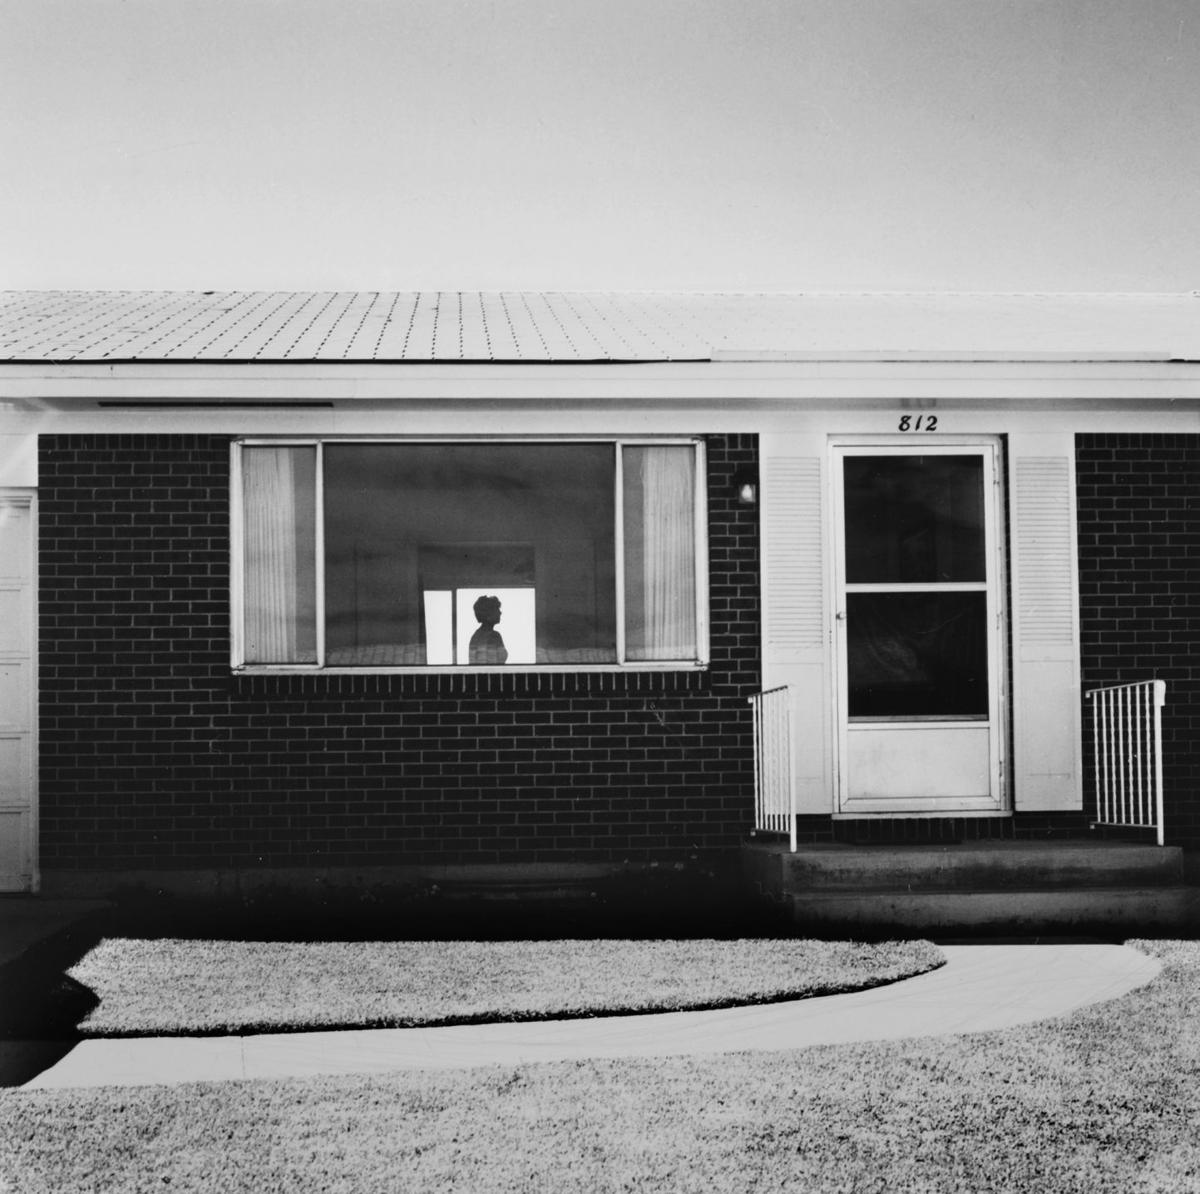 We Buy Houses Lincoln Ne: L. Kent Wolgamott: Lincoln PhotoFest To Fill Museums And